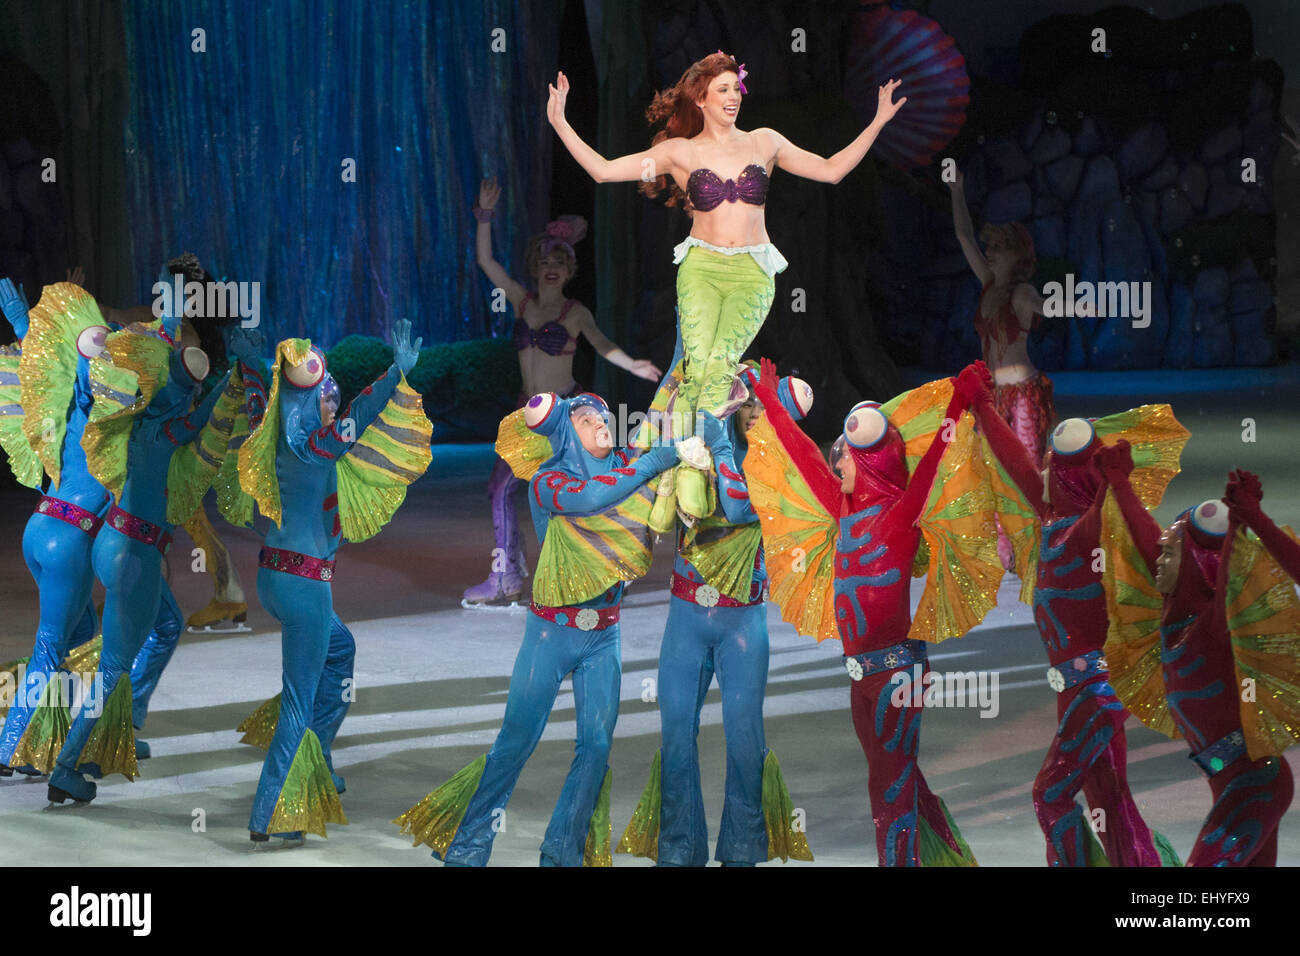 Calgary, Canada. 18th March, 2015. Ariel of Disney's Little Mermaid makes her way on the ice in Disney On Ice - Stock Image